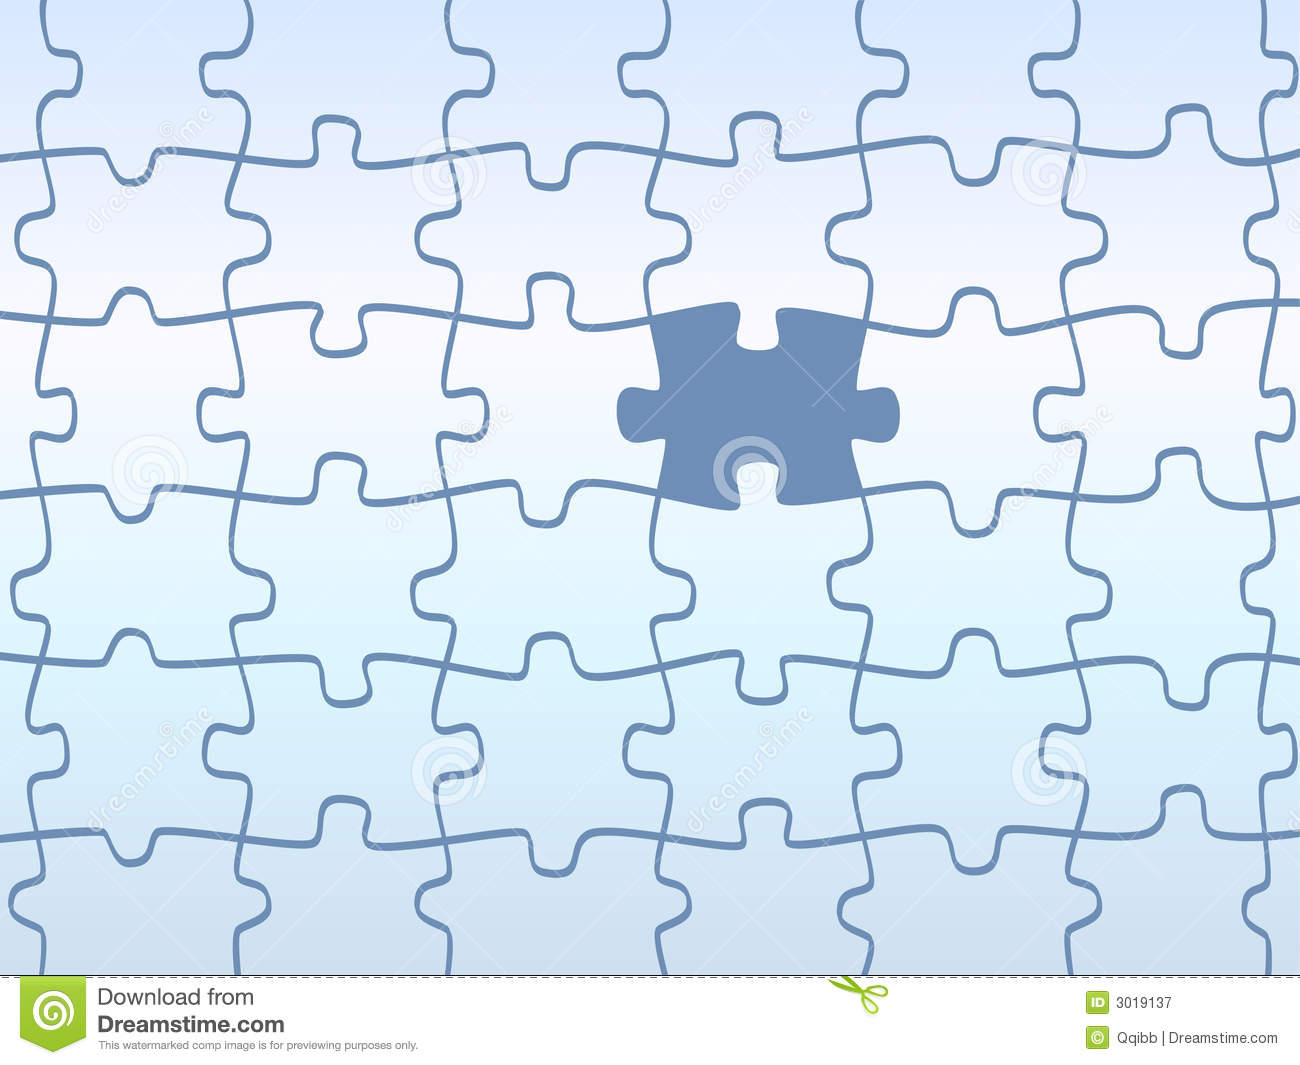 Jigsaw puzzles pattern royalty free stock photography image 3019137